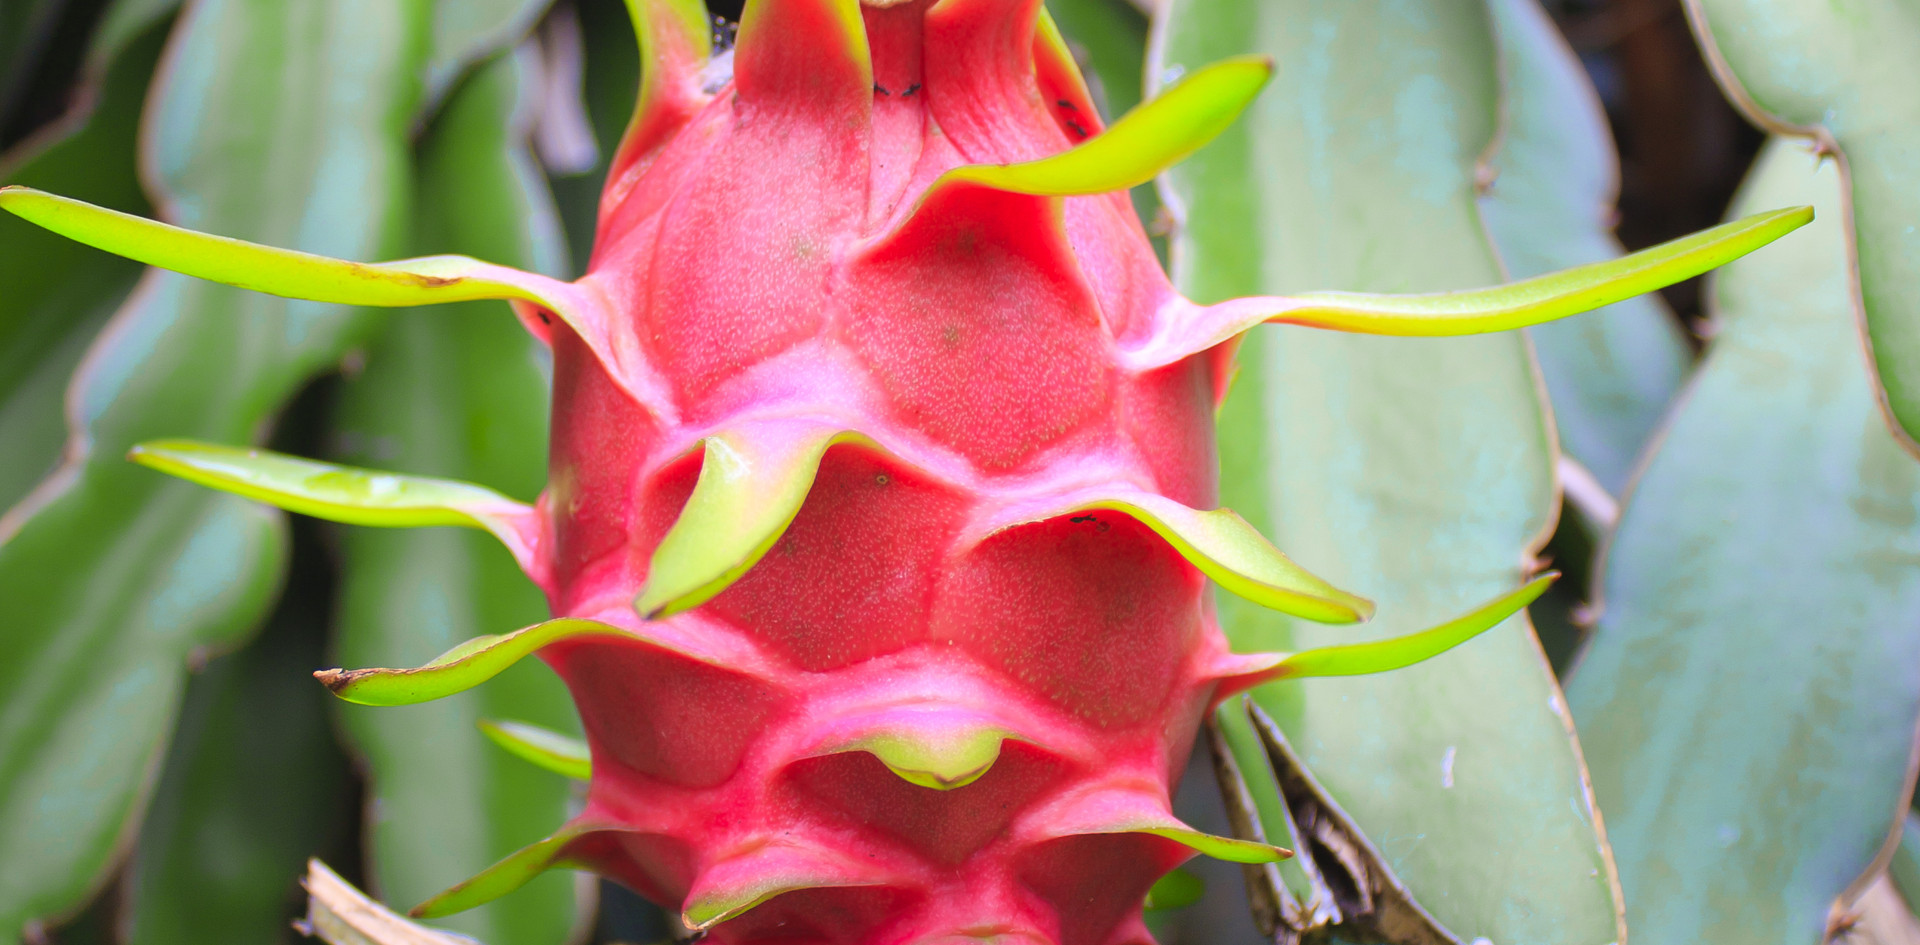 dragon fruit on a tree.jpg